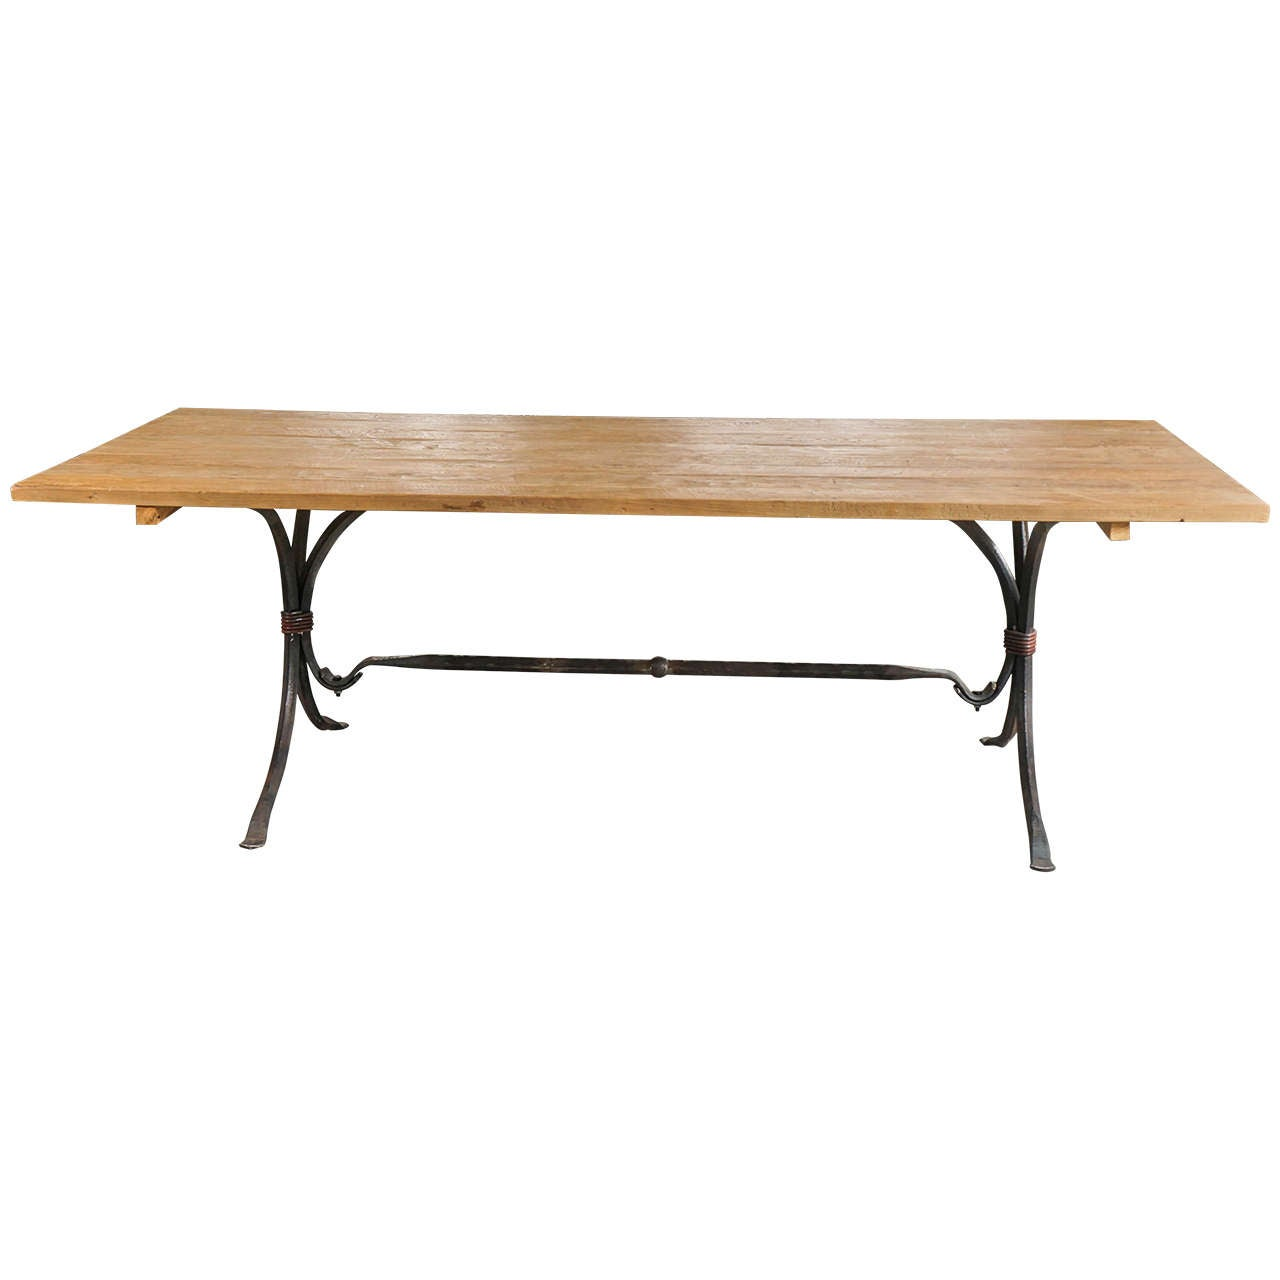 Teak Wood And Wrought Iron Indoor And Outdoor Dining Table For Sale At 1stdibs